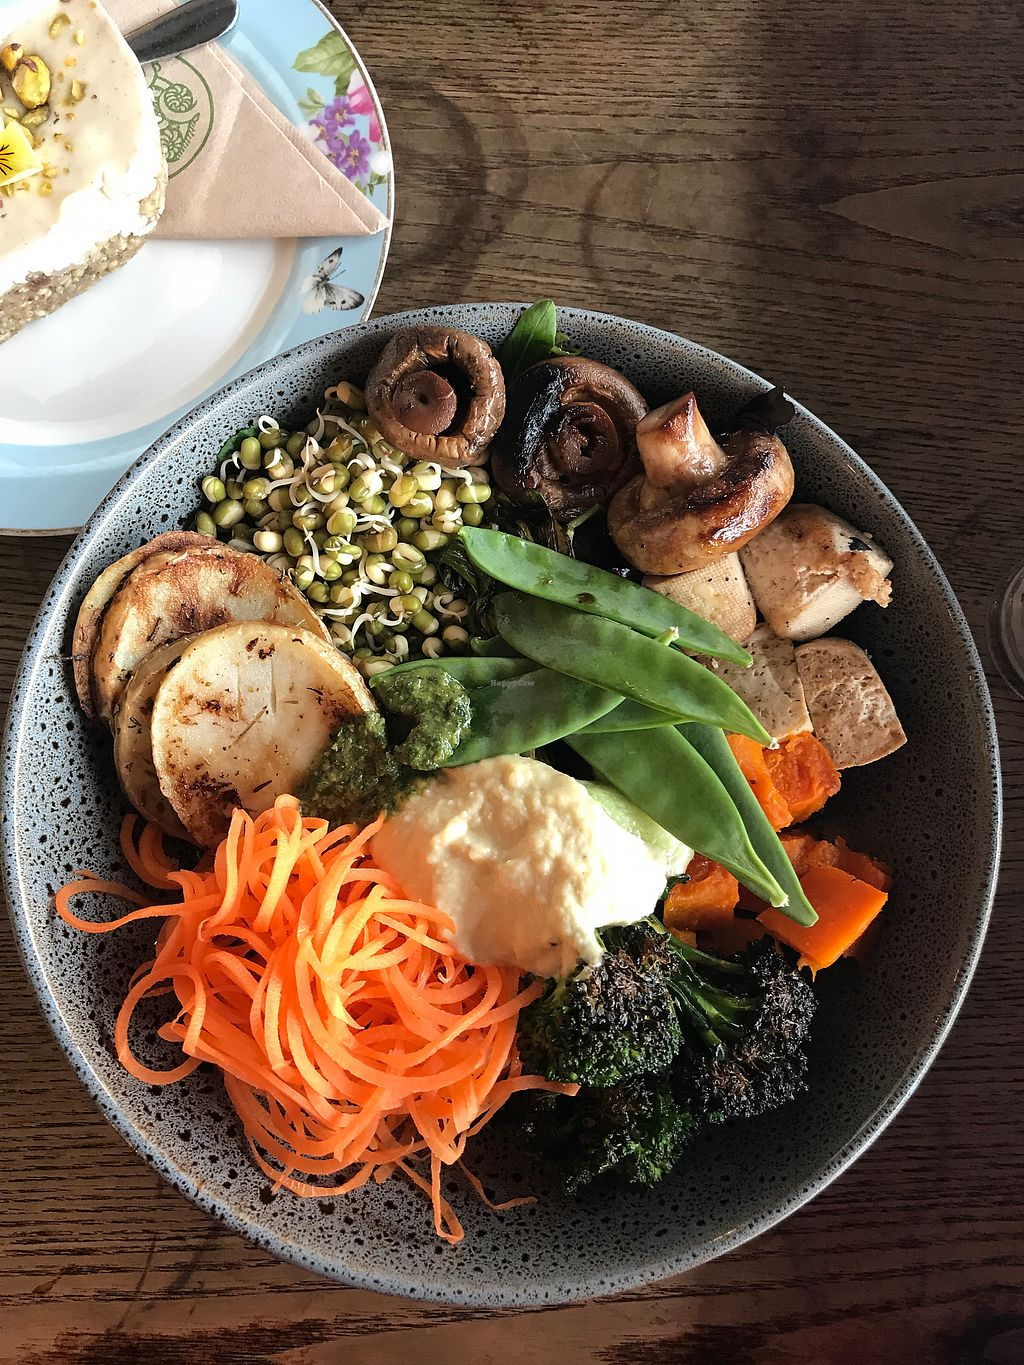 "Photo of Grindz Cafe  by <a href=""/members/profile/Binks"">Binks</a> <br/>Buddha bowl <br/> August 31, 2017  - <a href='/contact/abuse/image/82844/299304'>Report</a>"